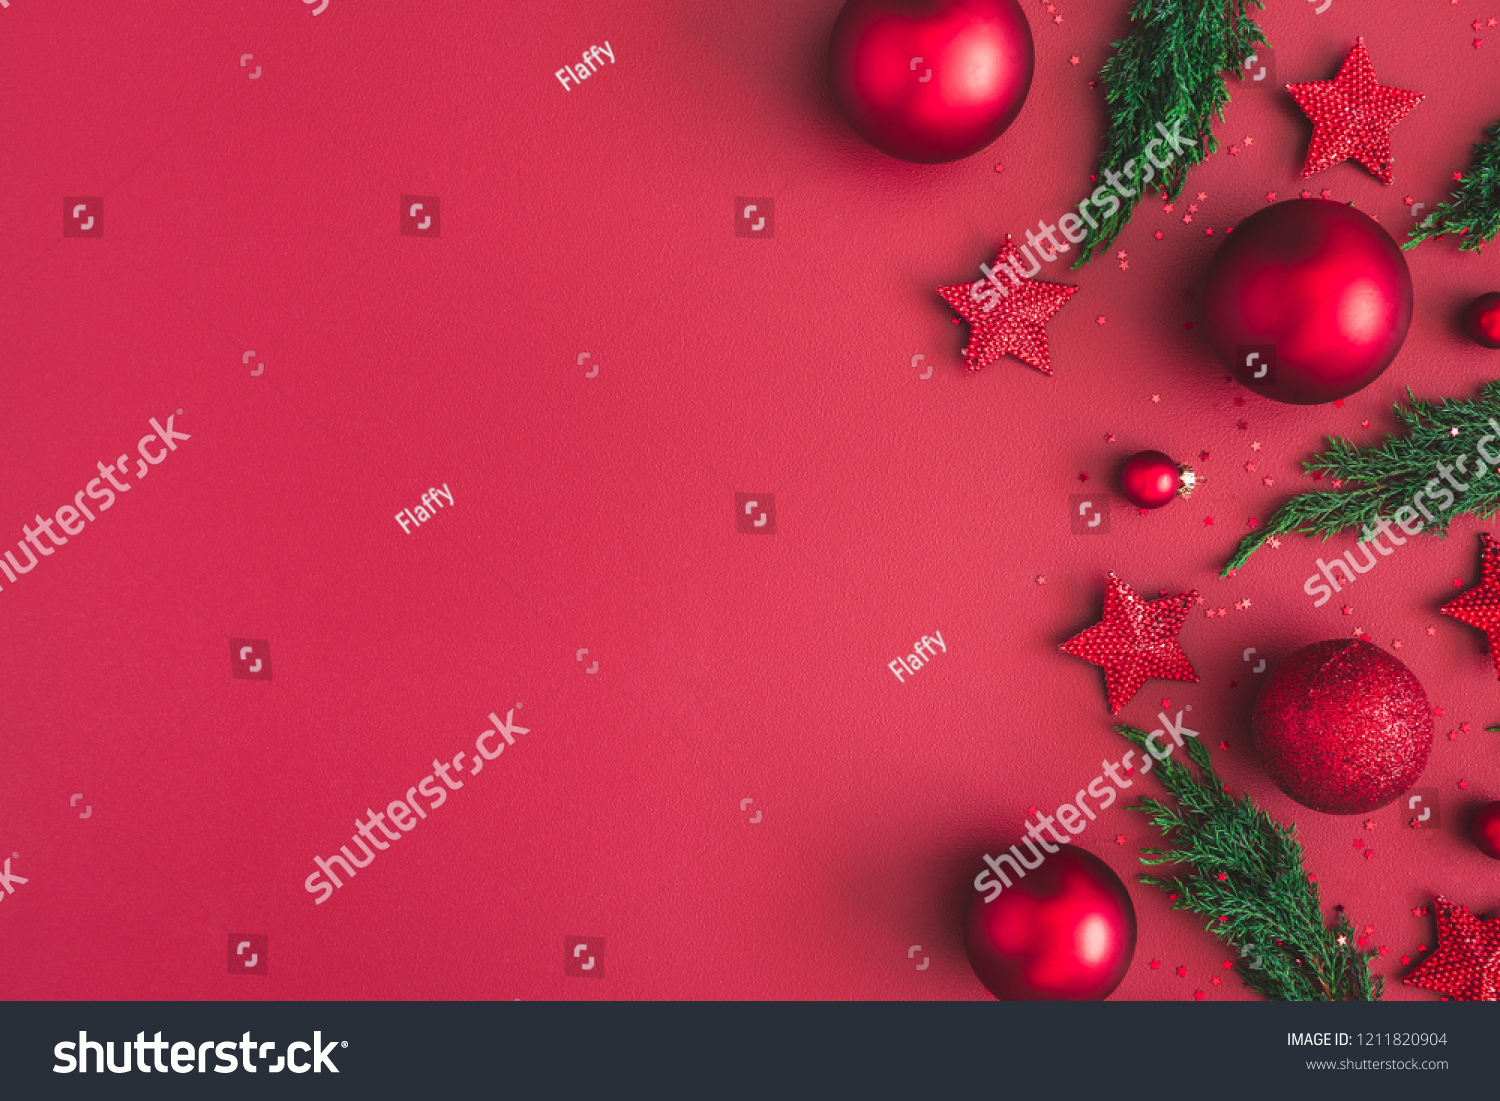 Christmas composition. Christmas red decorations, fir tree branches on red background. Flat lay, top view, copy space #1211820904